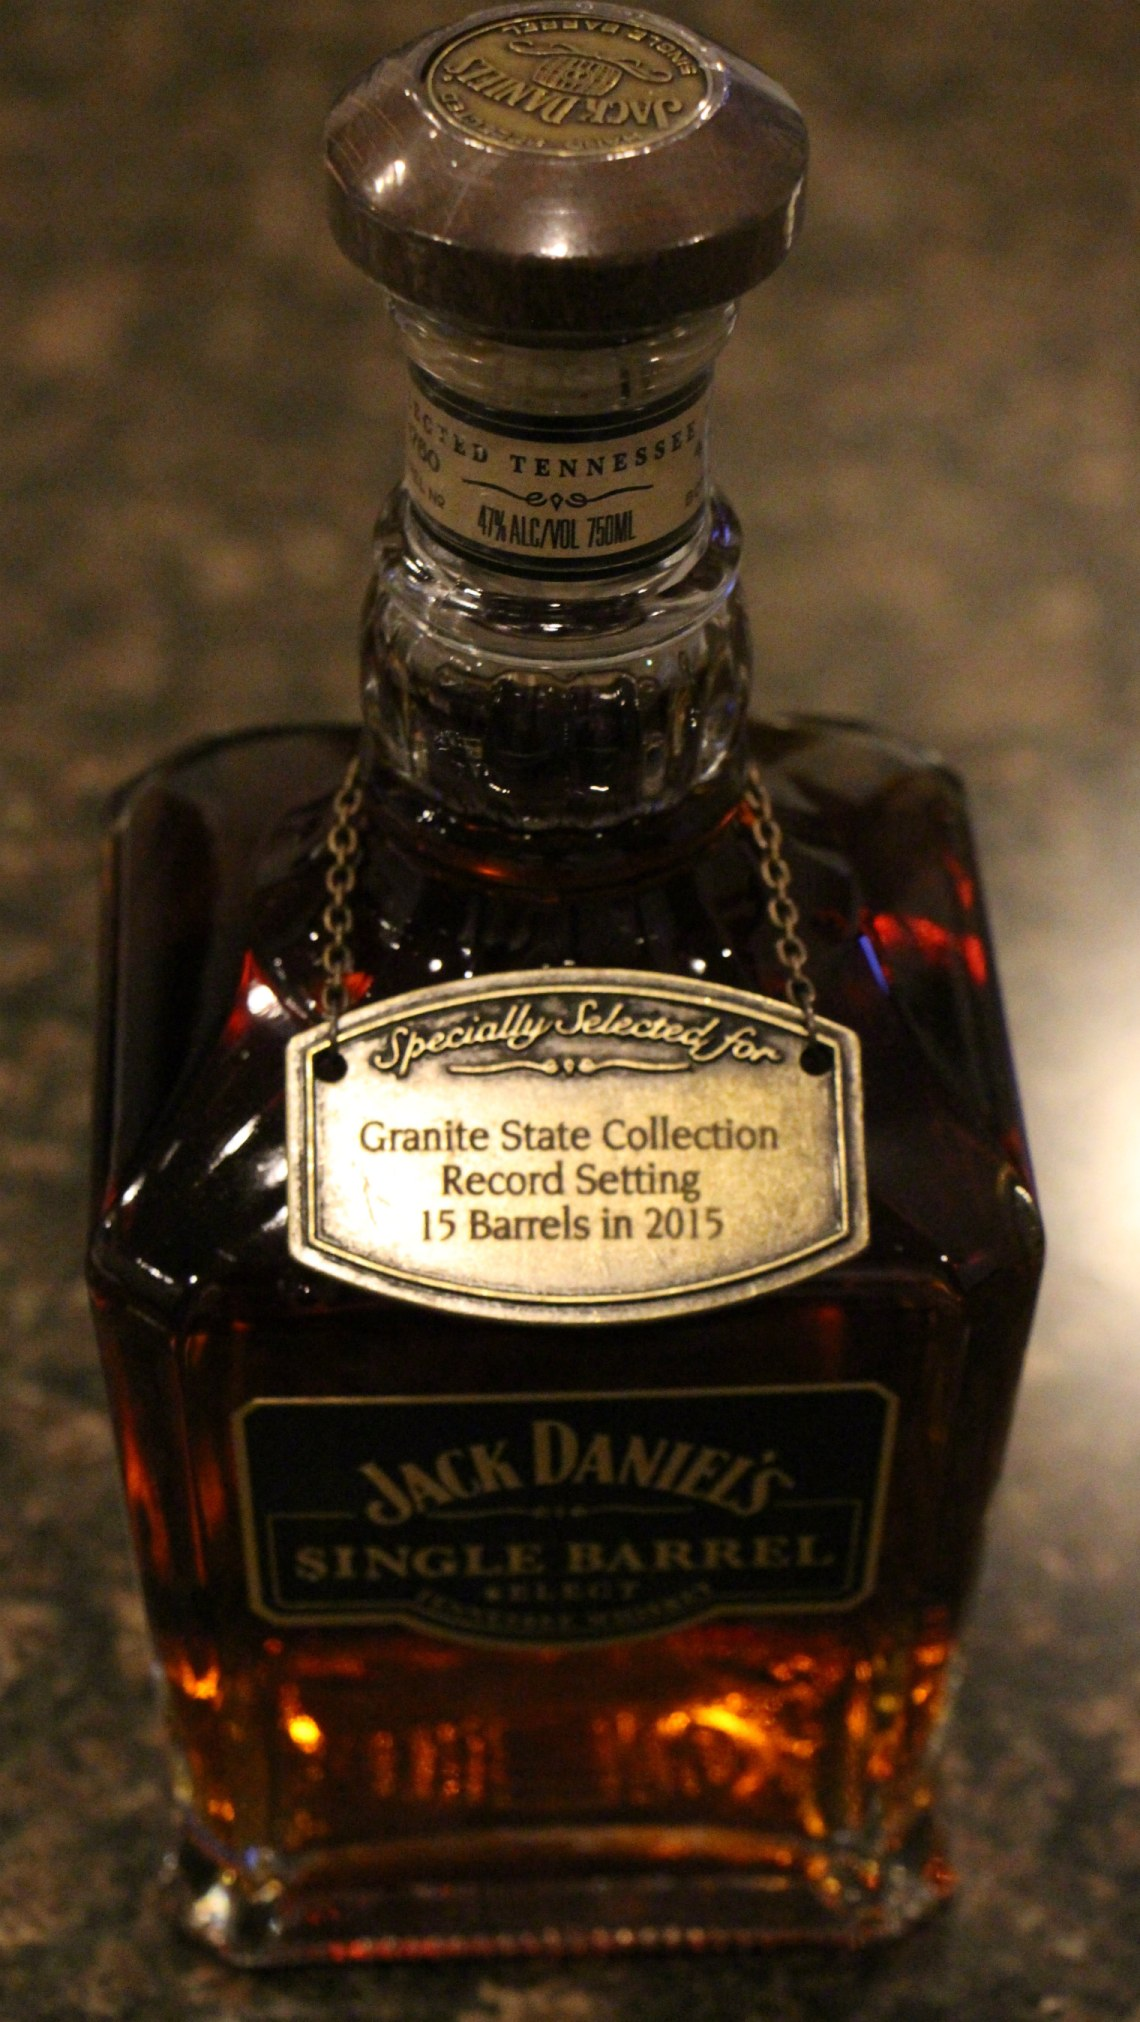 Jack Daniel's Single Barrel Select Granite State Collection Rick R-6 Barrel 15-1778